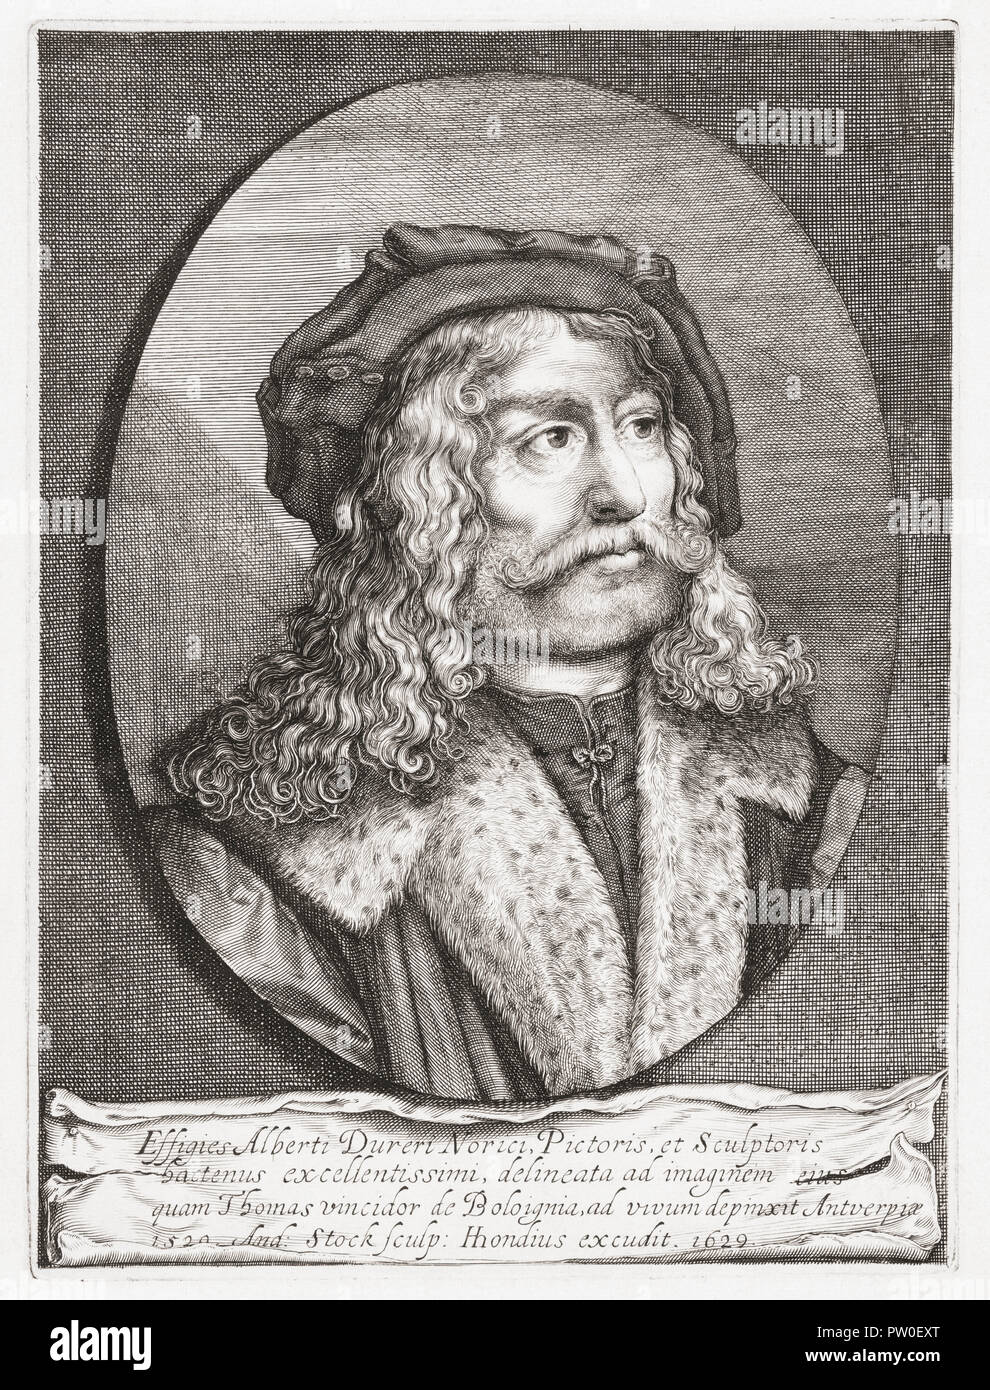 Albrecht Dürer, 1471 to 1528. German painter, printmaker and theorist. A 17th century engraving after a work by Italian artist Tommaso di Andrea Vincidor. - Stock Image